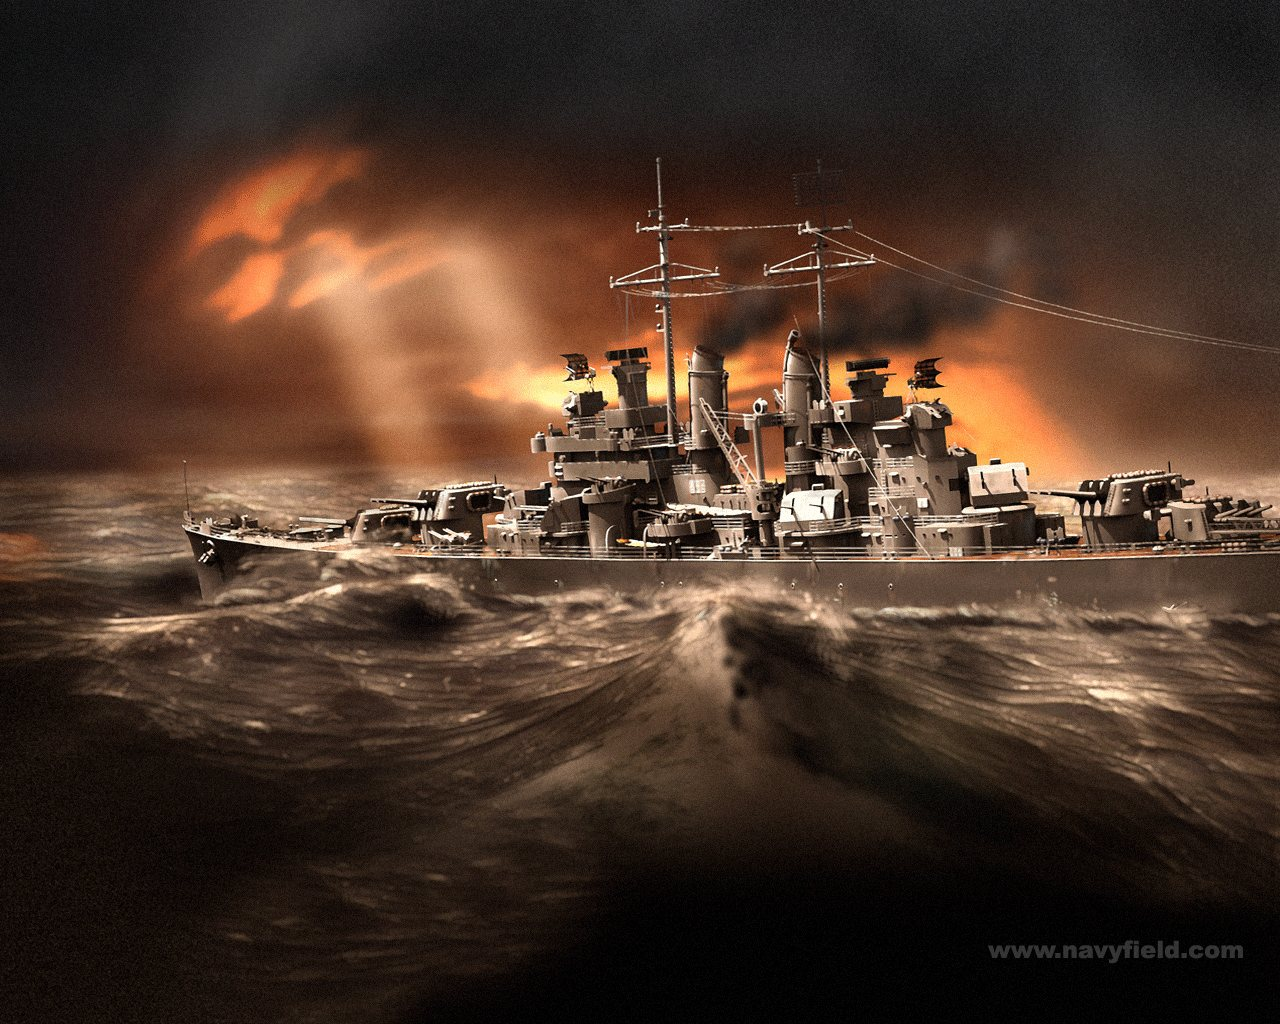 US Navy Wallpaper A47